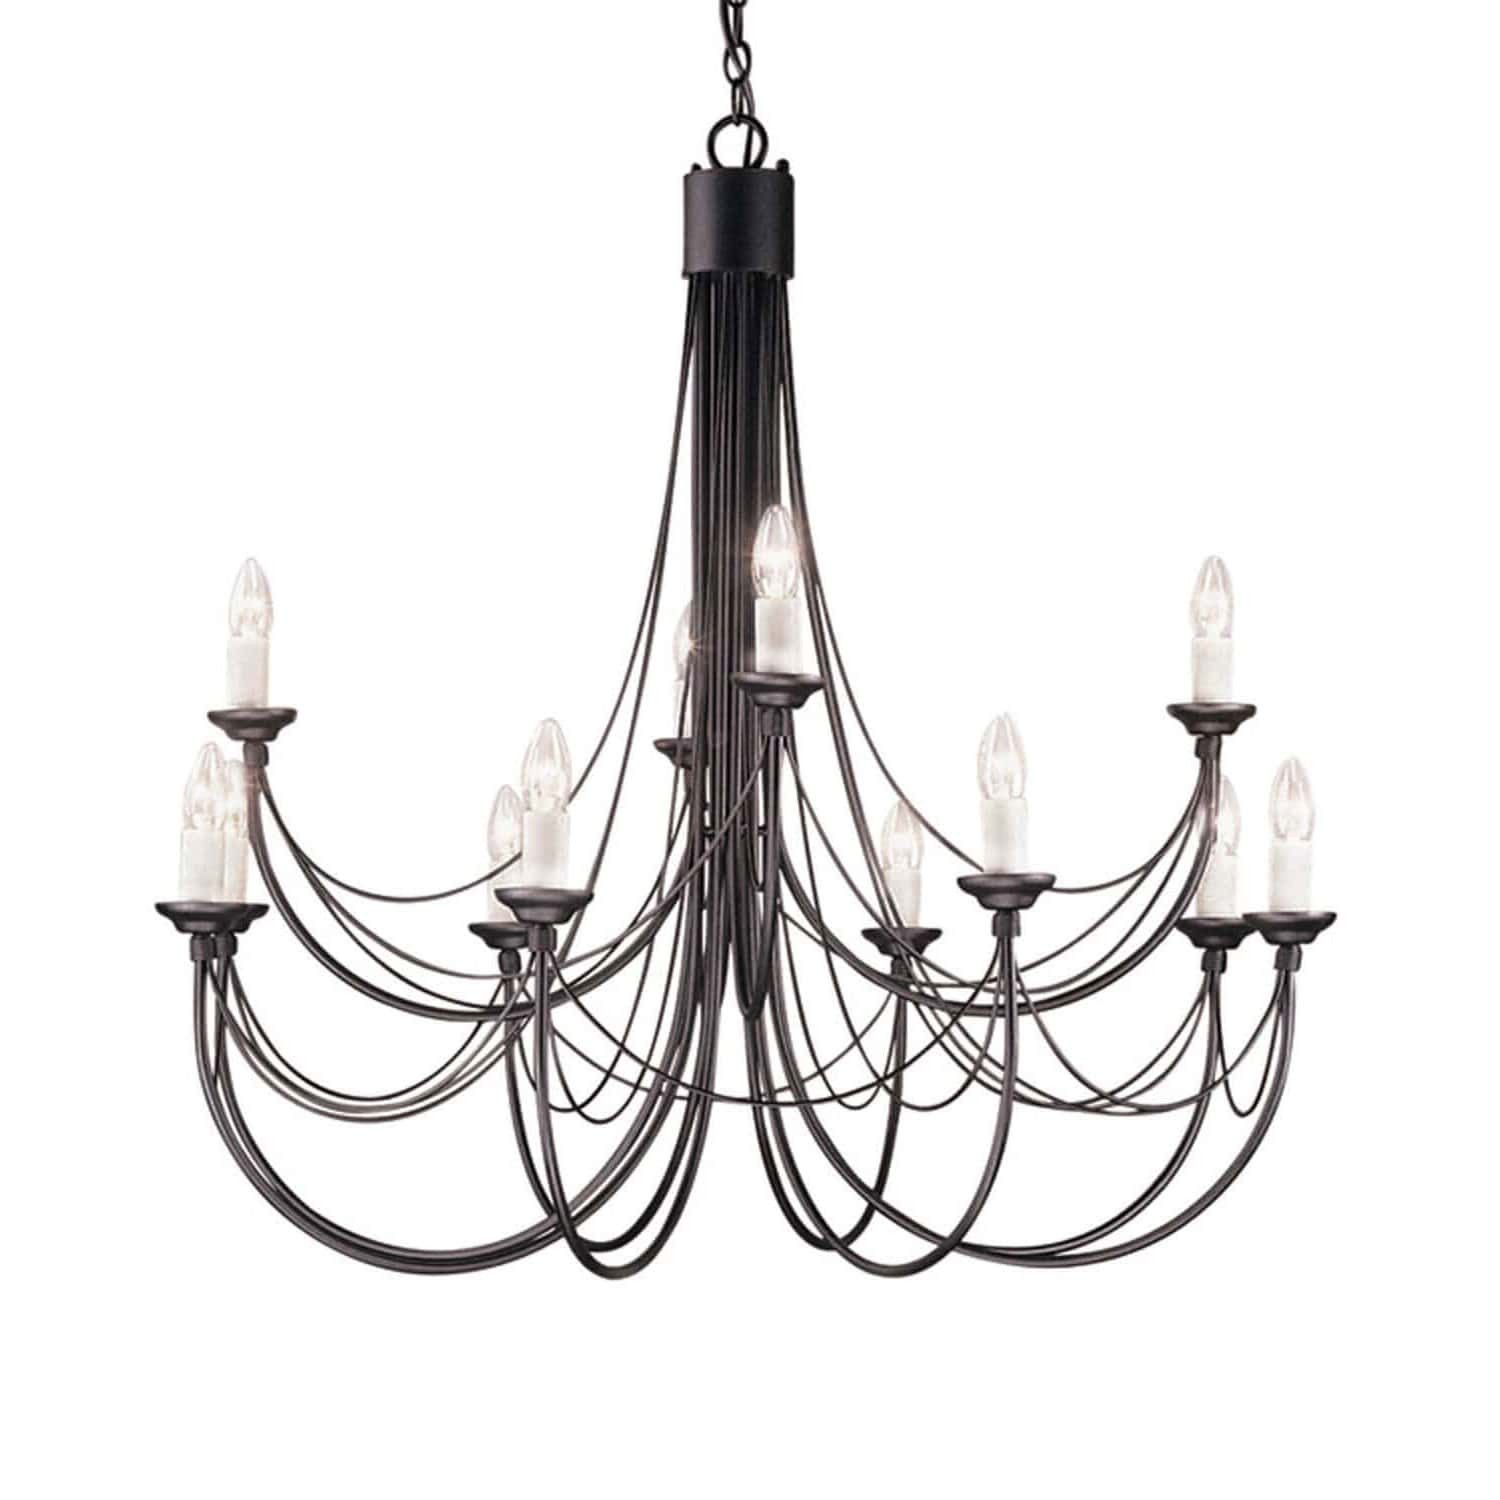 Elstead Carisbrooke 12 Light Black Candle Chandelier Black